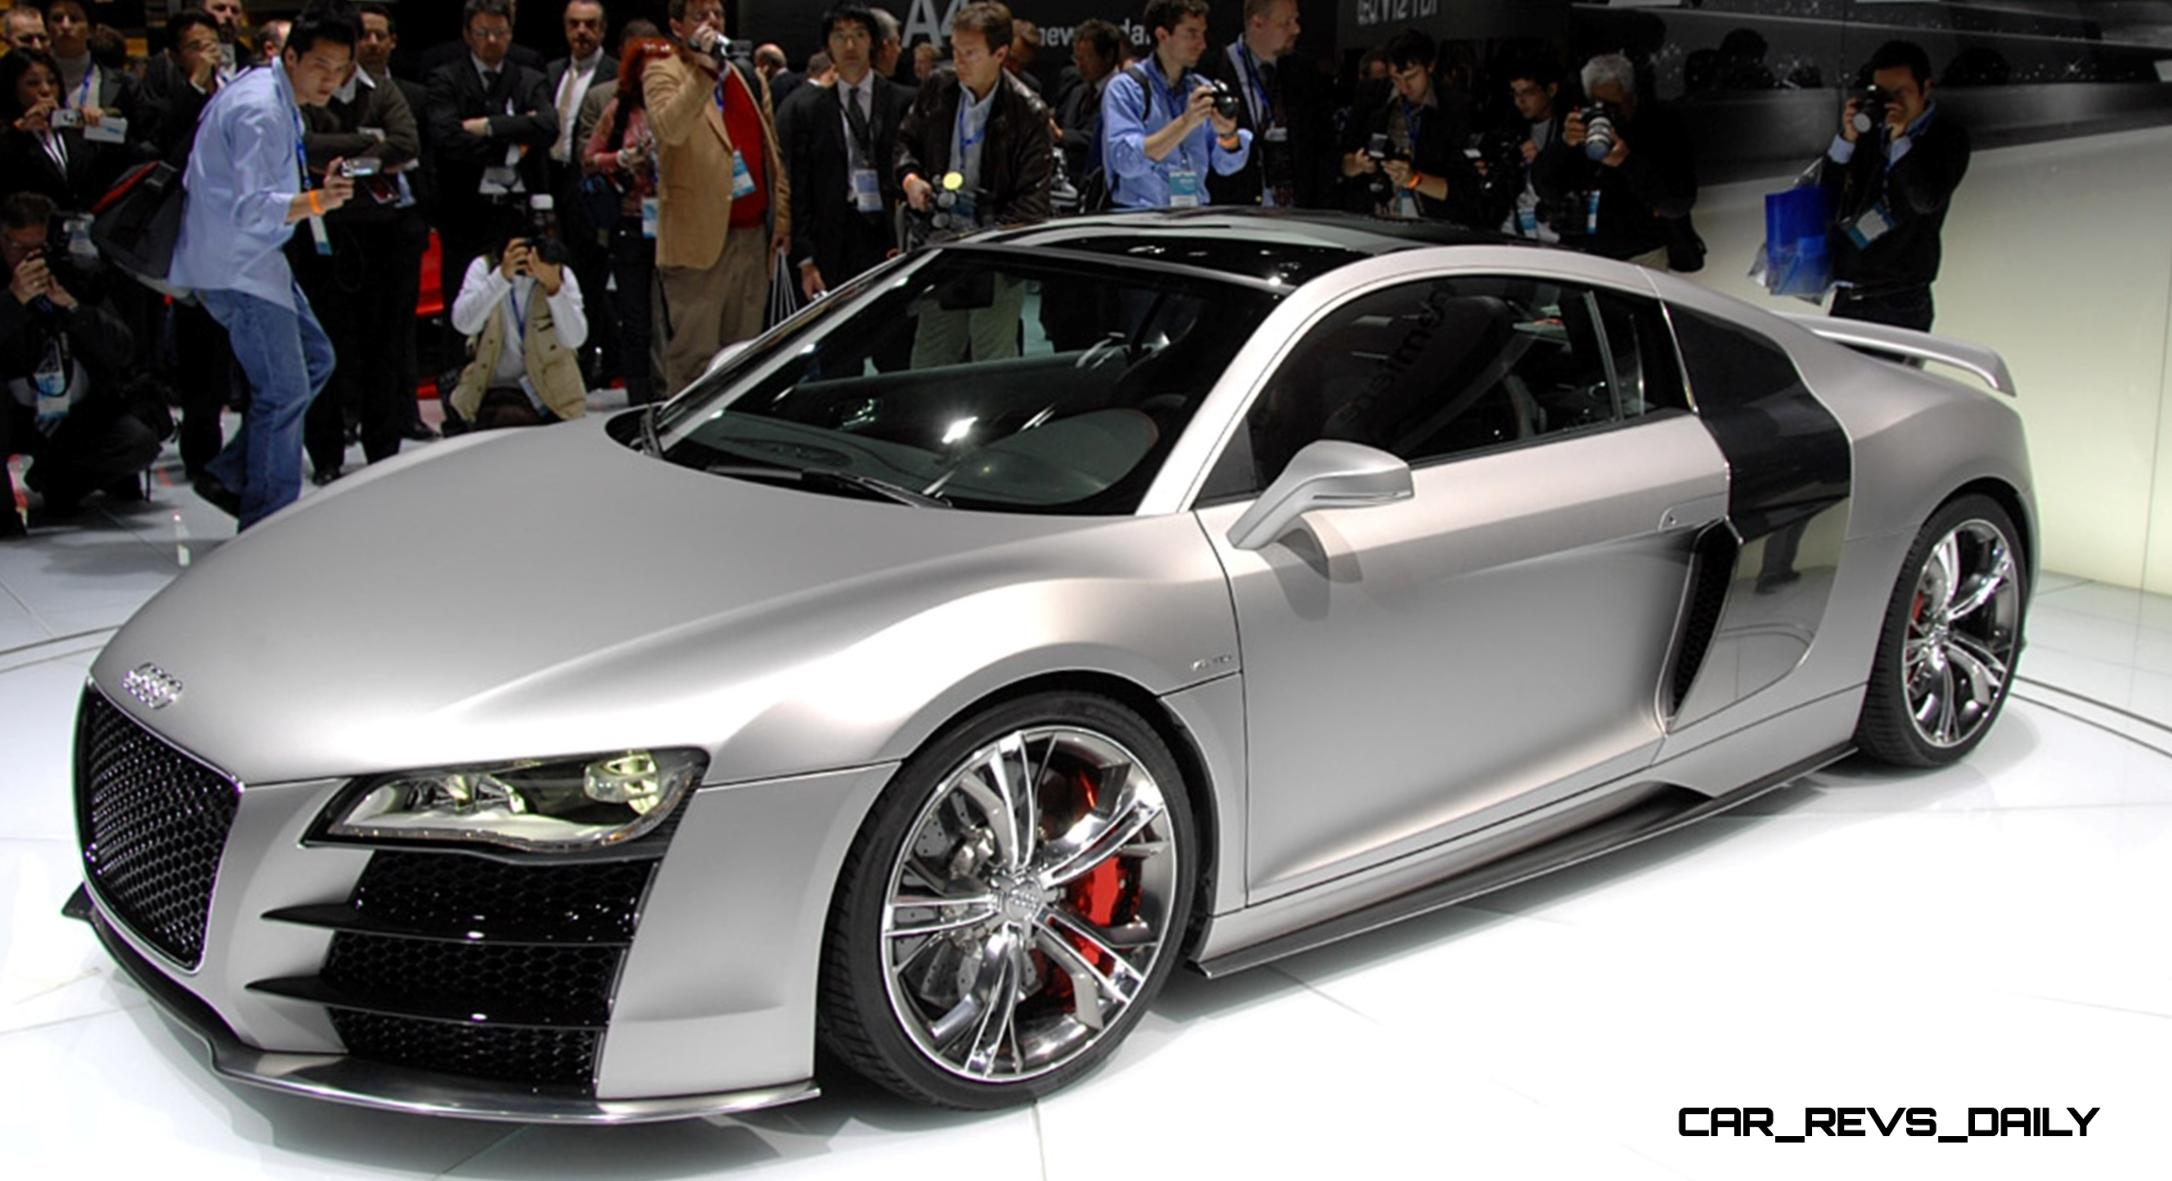 Concept Flashback Audi R Tdi V Shows Great Engineering Potential But Limited Market on Nissan Esflow Concept Car